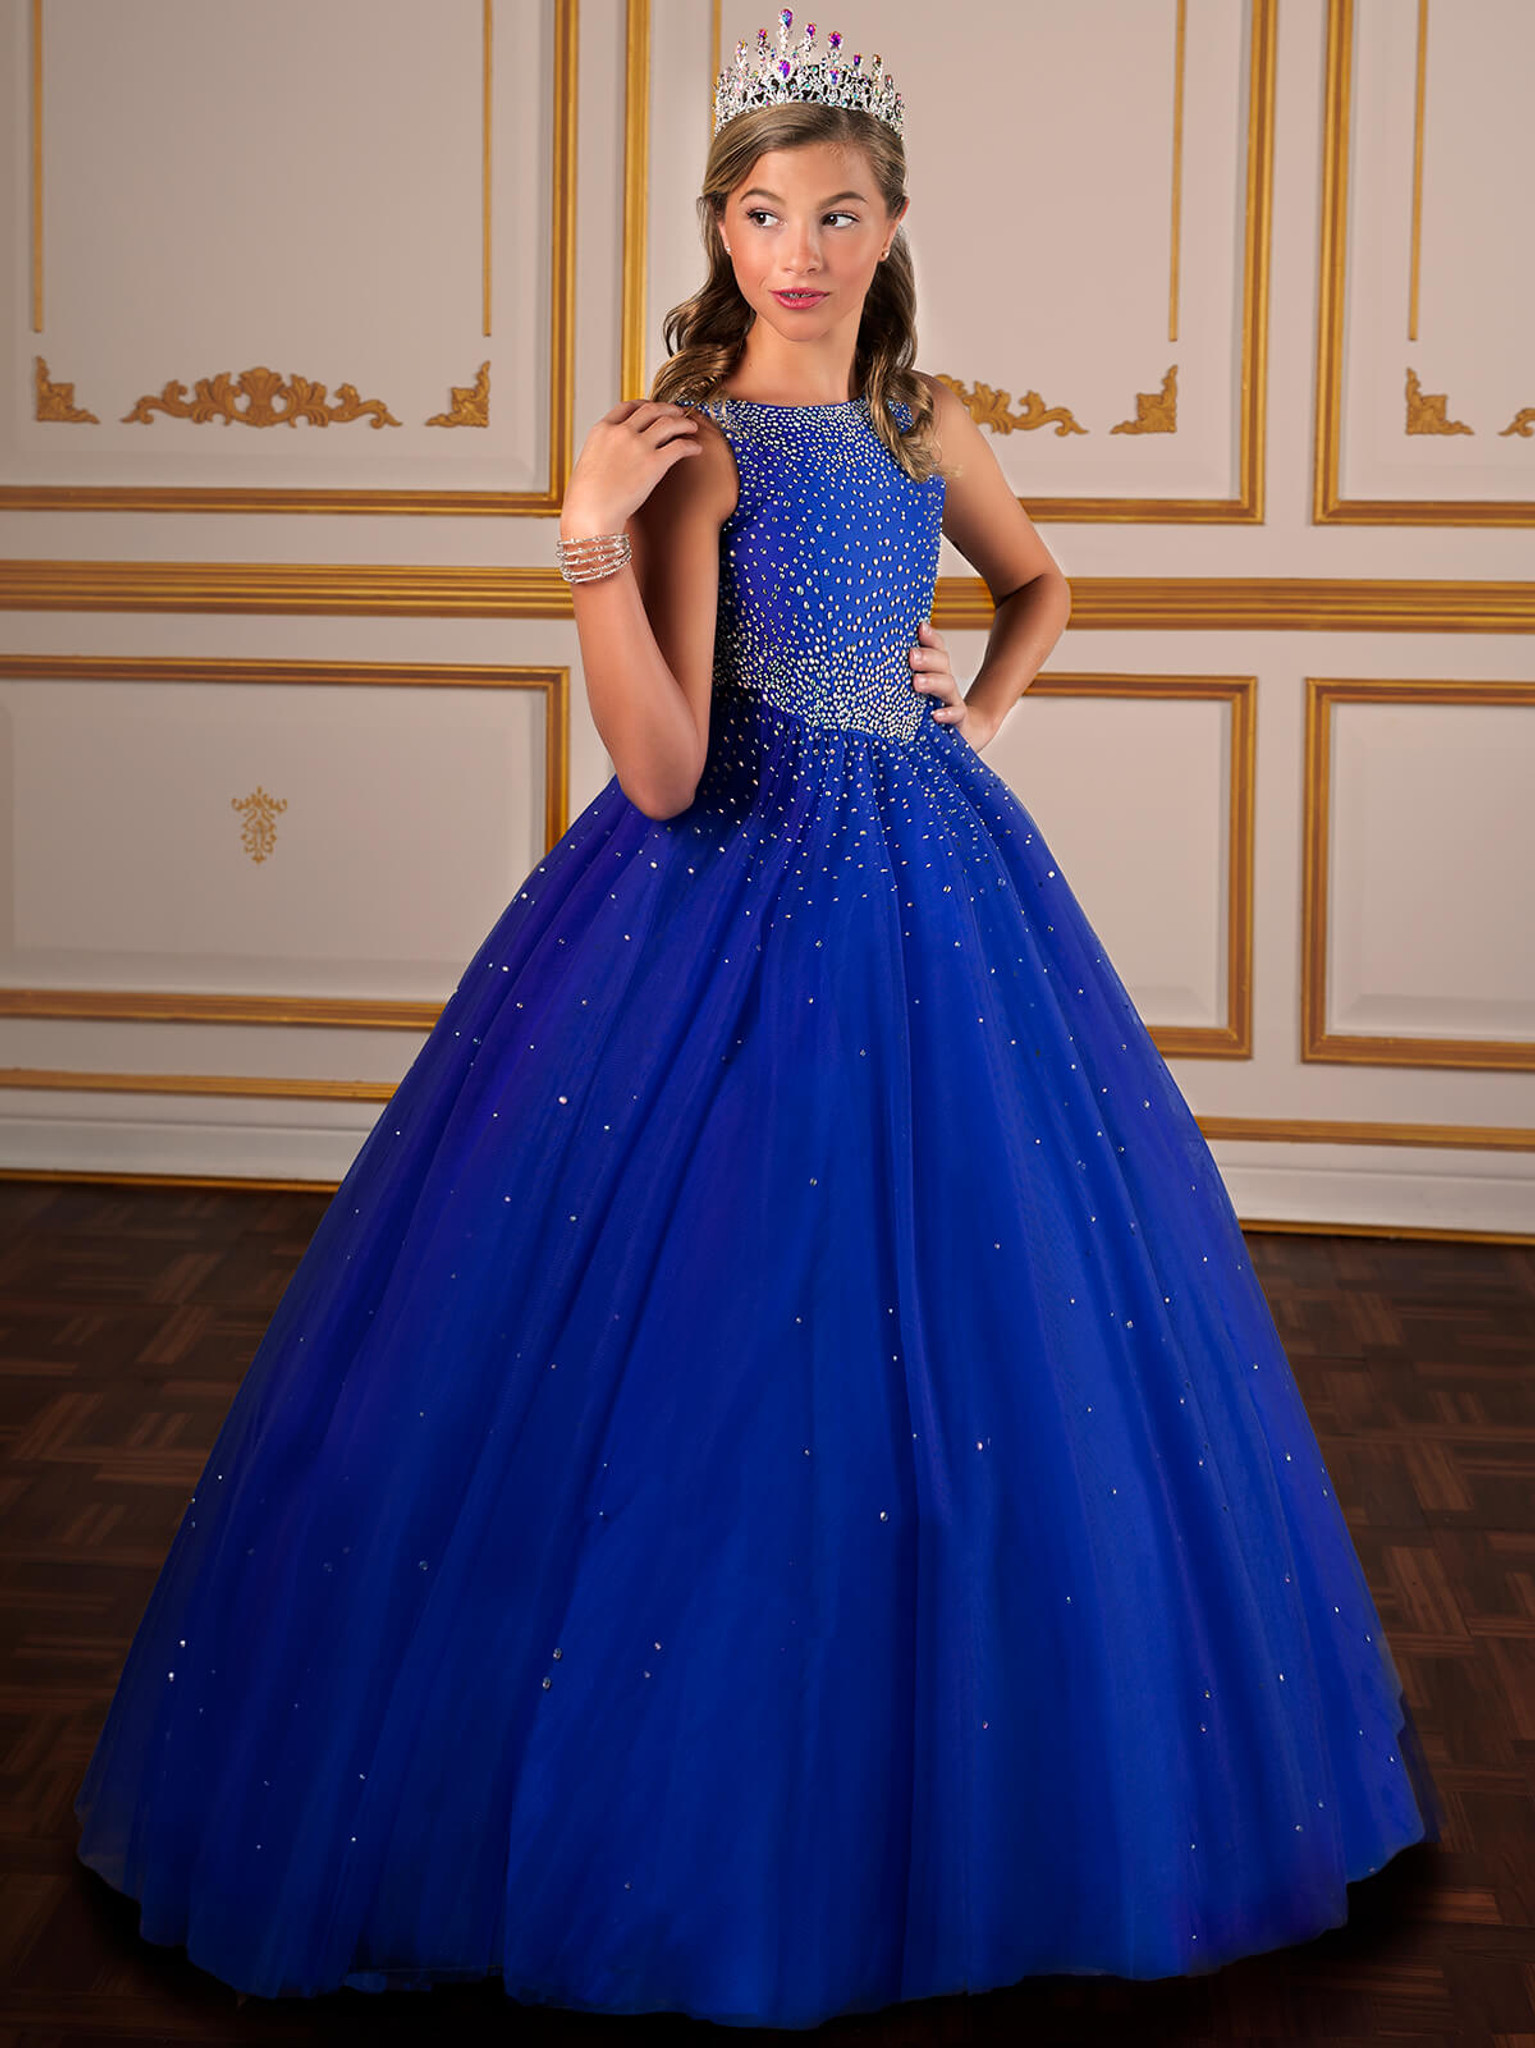 Tulle Tiffany Designs 13574 Pageant Dress PageantDesigns